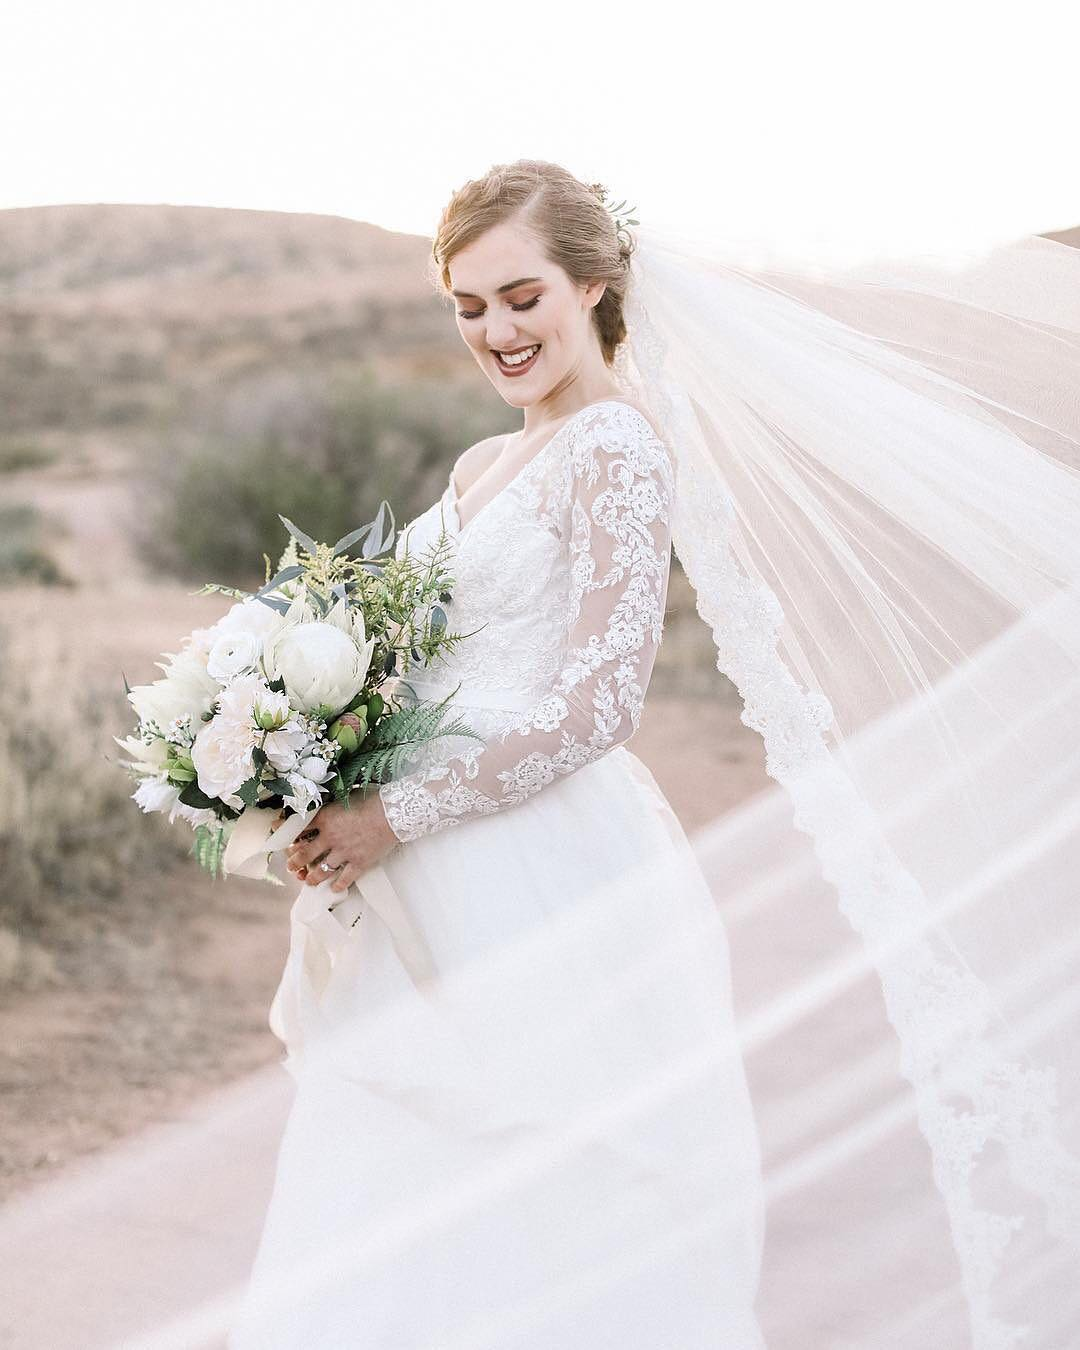 Bride wearing a lace trim cathedral length veil     Insta-Worthy Veils